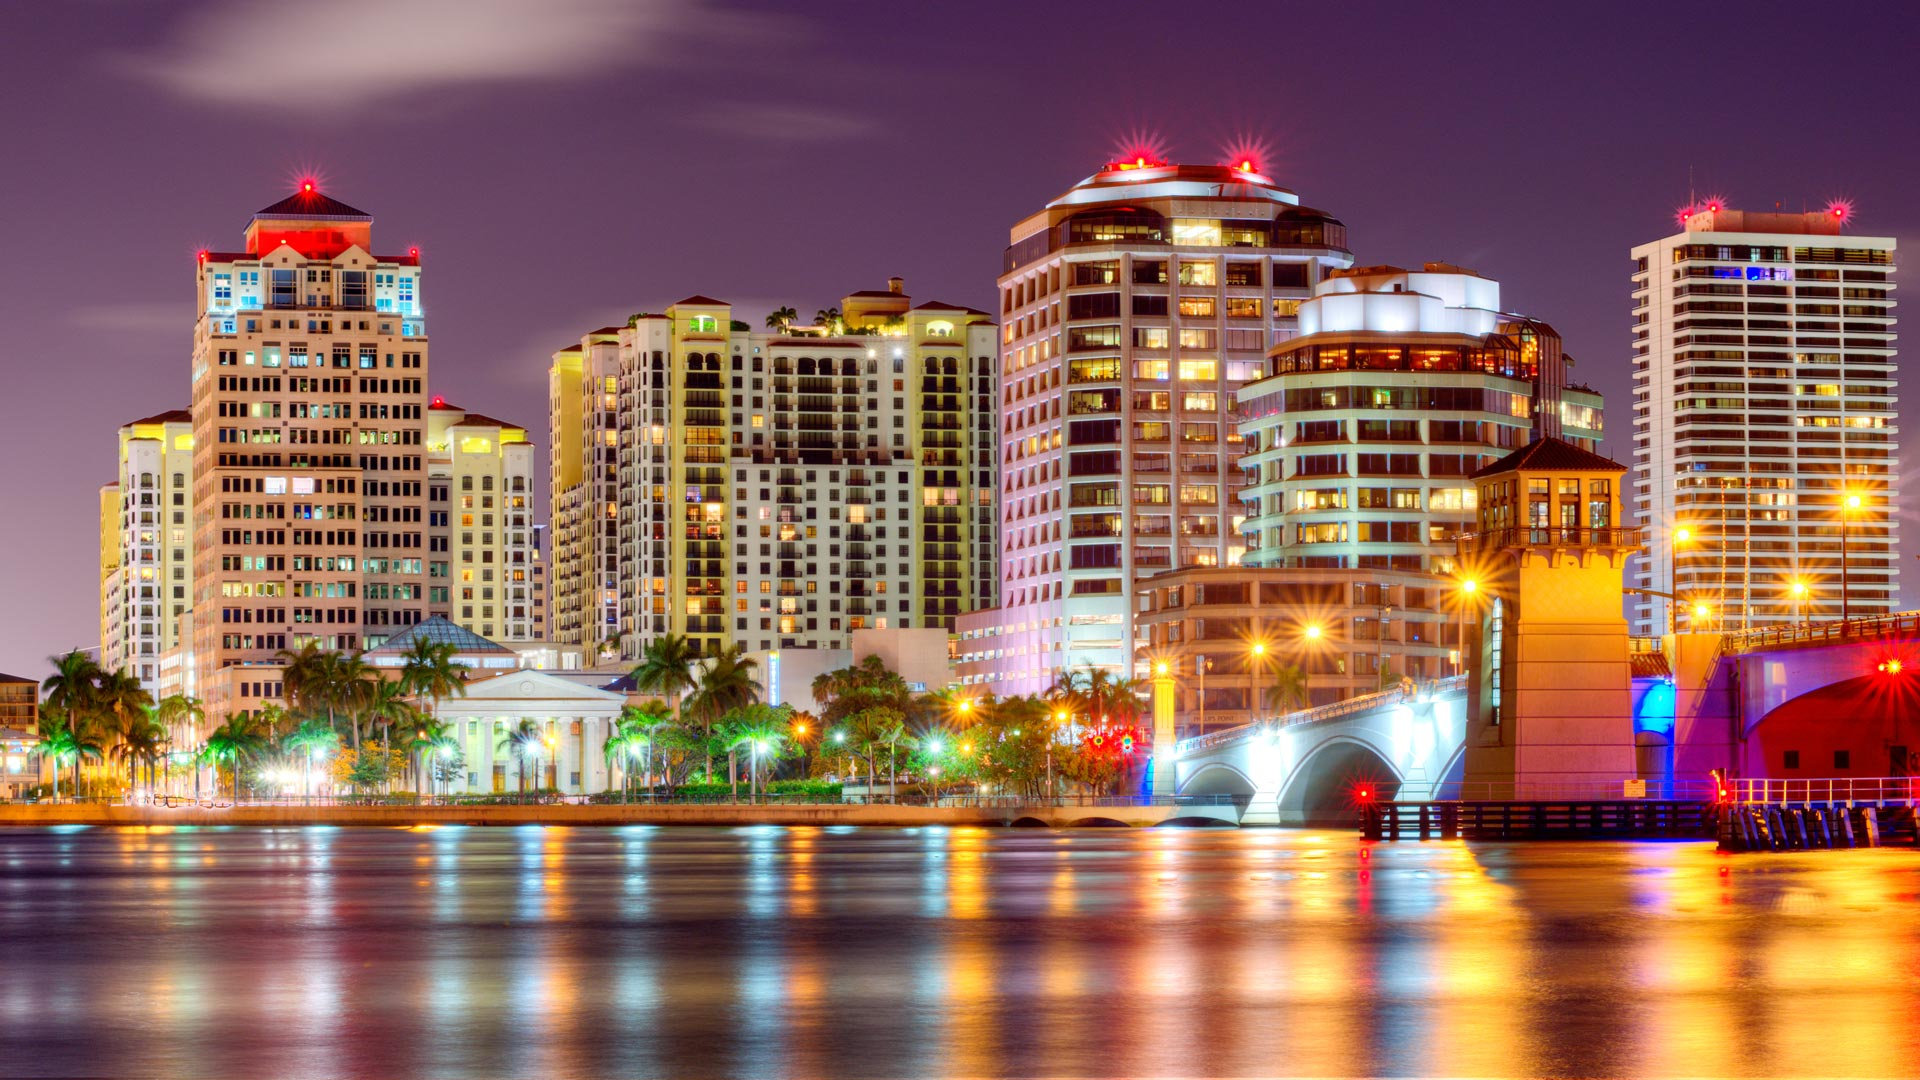 Waterfront view of West Palm Beach